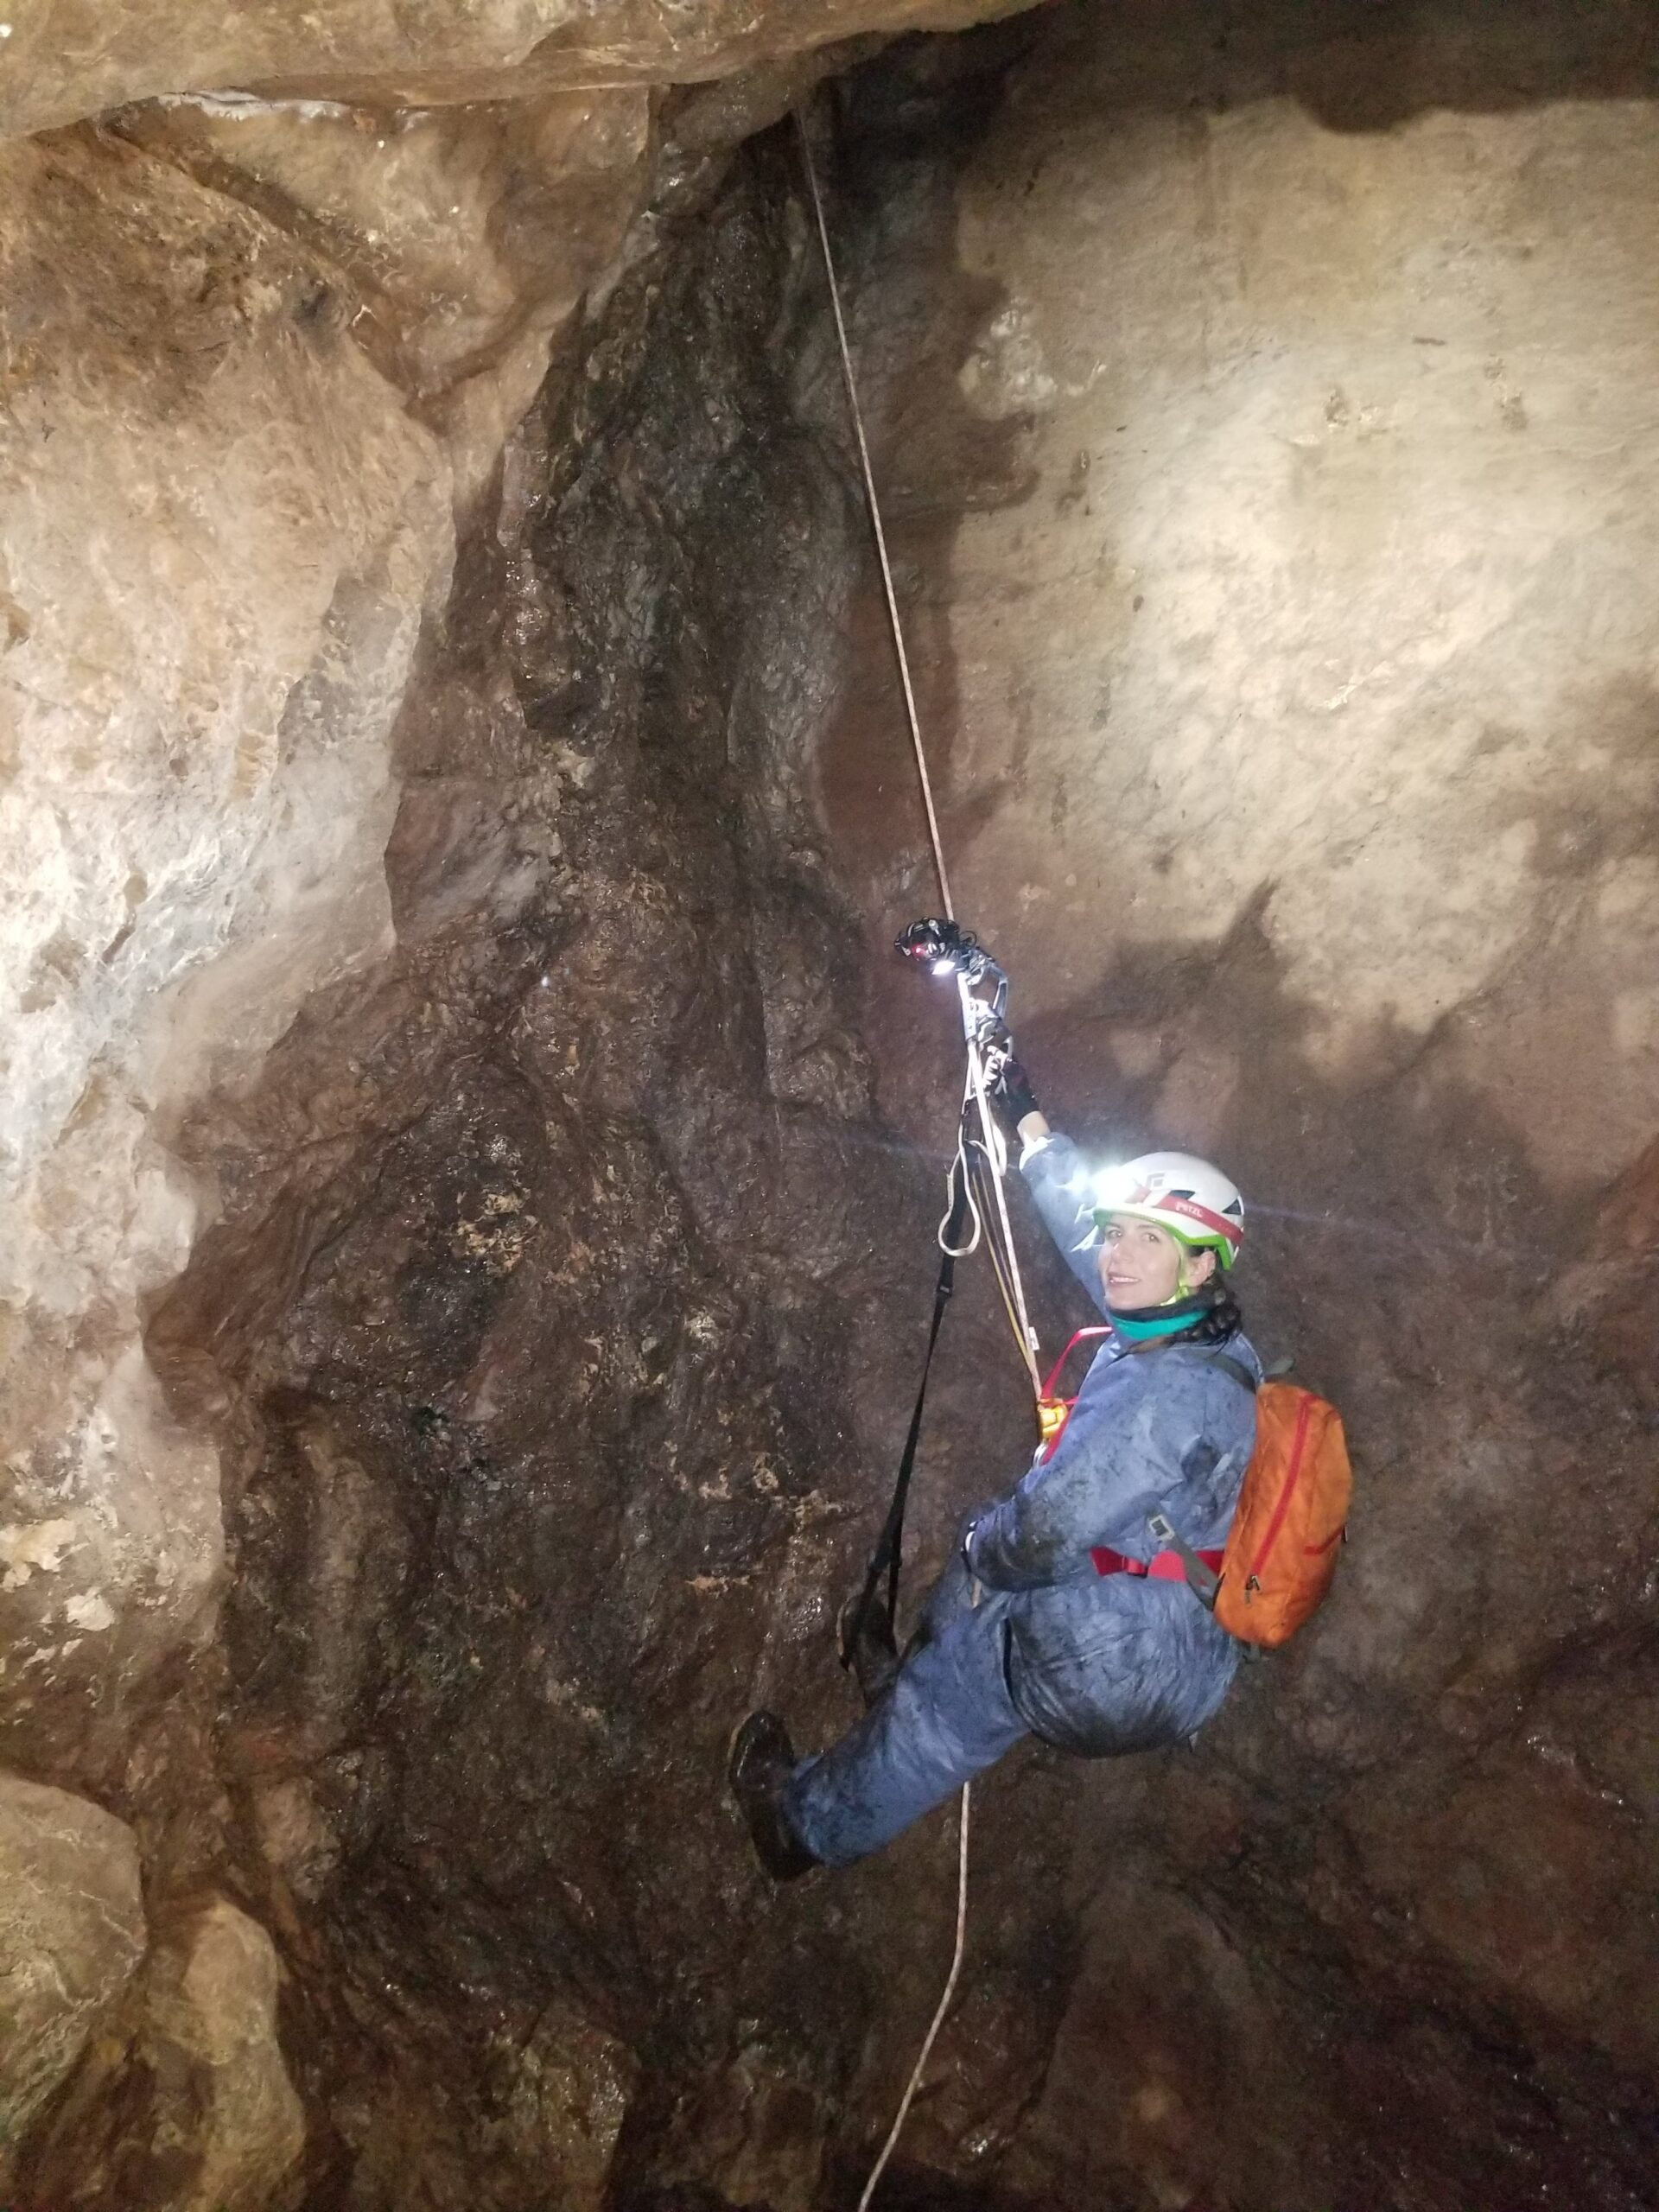 U-M doctoral student Giorgia Auteri rappelling into an abandoned Upper Peninsula copper mine to study hibernating little brown bats, one of species known to be affected by white-nose syndrome. Image credit: John DePue